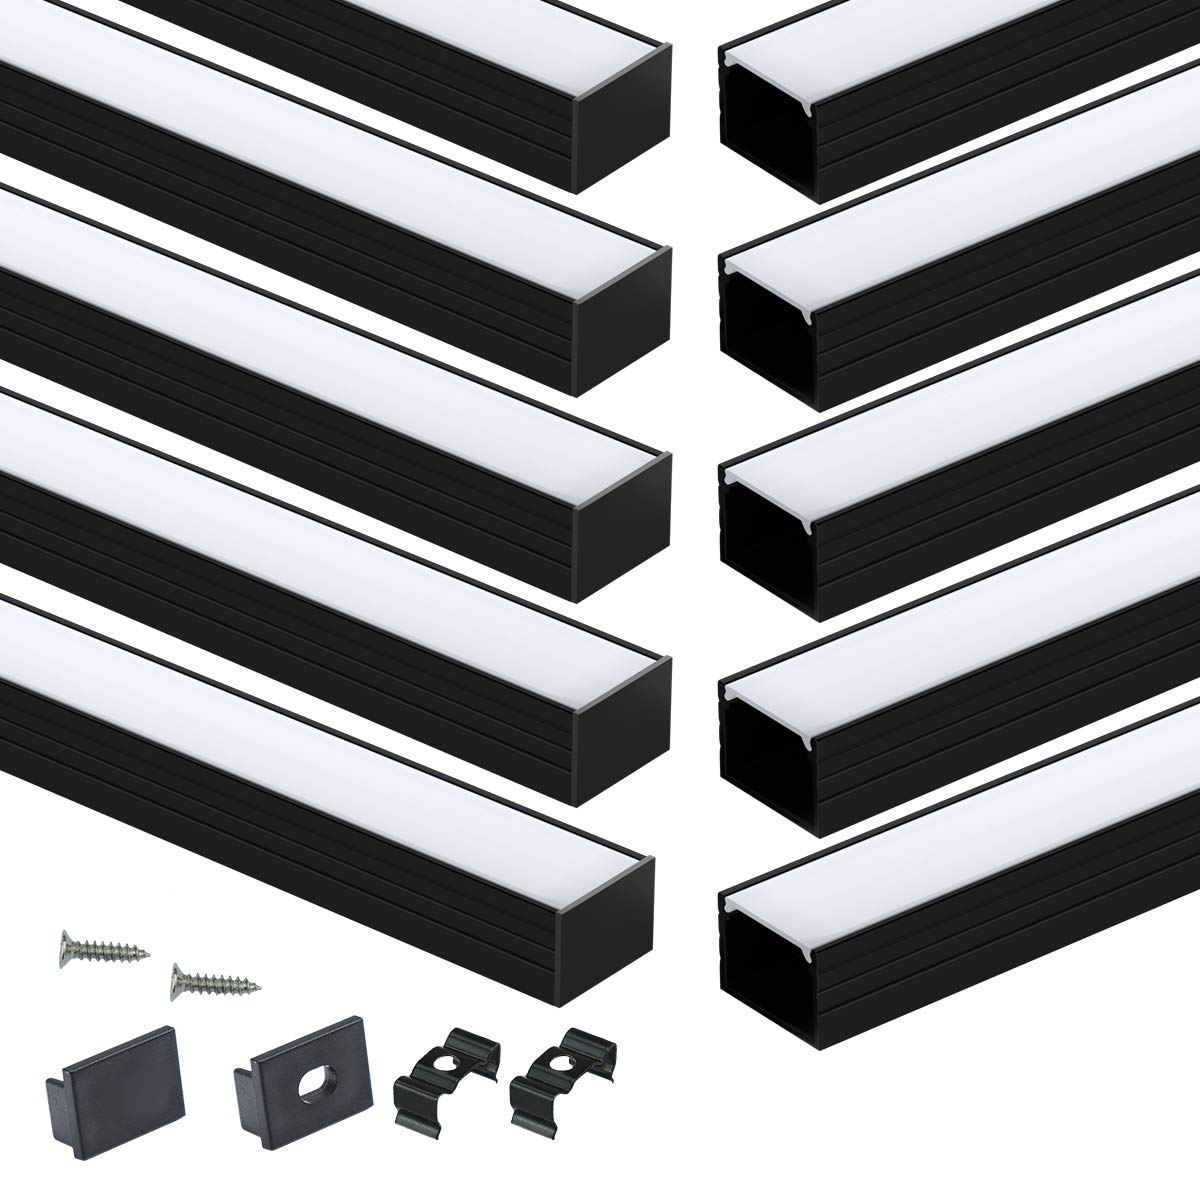 Muzata Black LED Channel with Spotless Lighting Effect Frosted Diffuser Cover,16mm Wide Aluminum Profile Track for Waterproof Strip Light Philips Hue Plus 10Pack 3.3Ft U103 BW,LU2 LP1 LN1 LW1